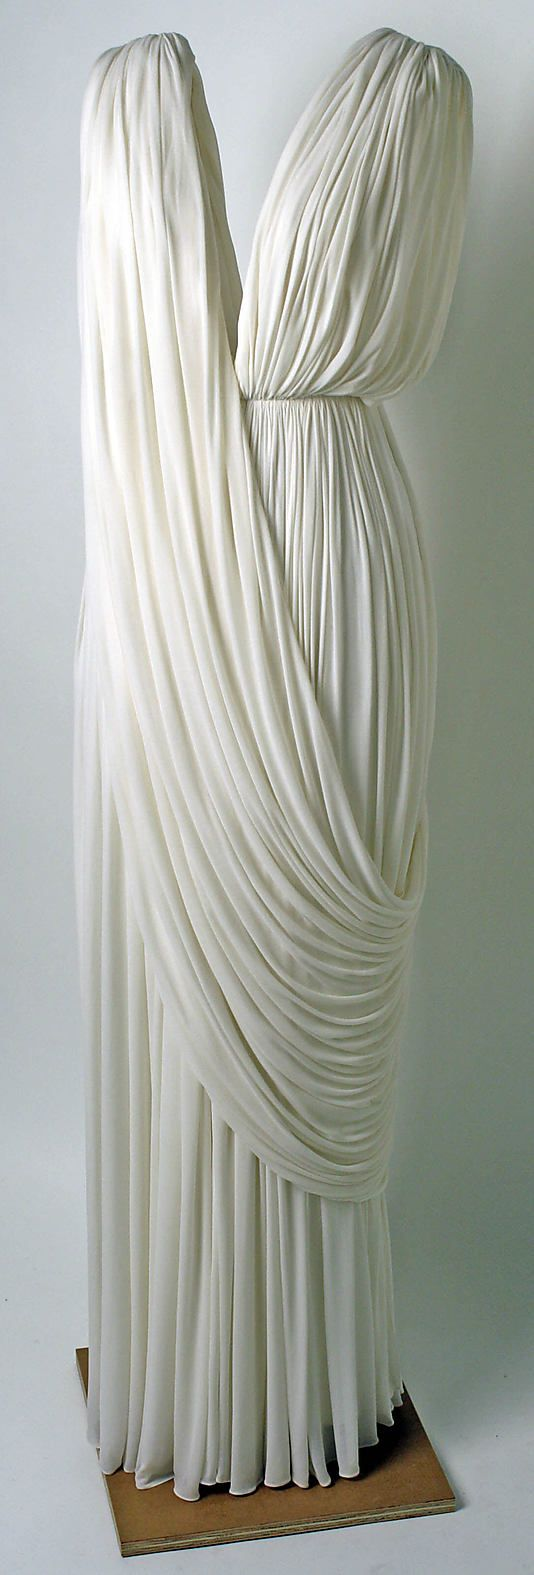 """Madame Grès  ca. 1965"" Saving for ideas. I love this style because it reminds me of ancient Grecian goddesses."